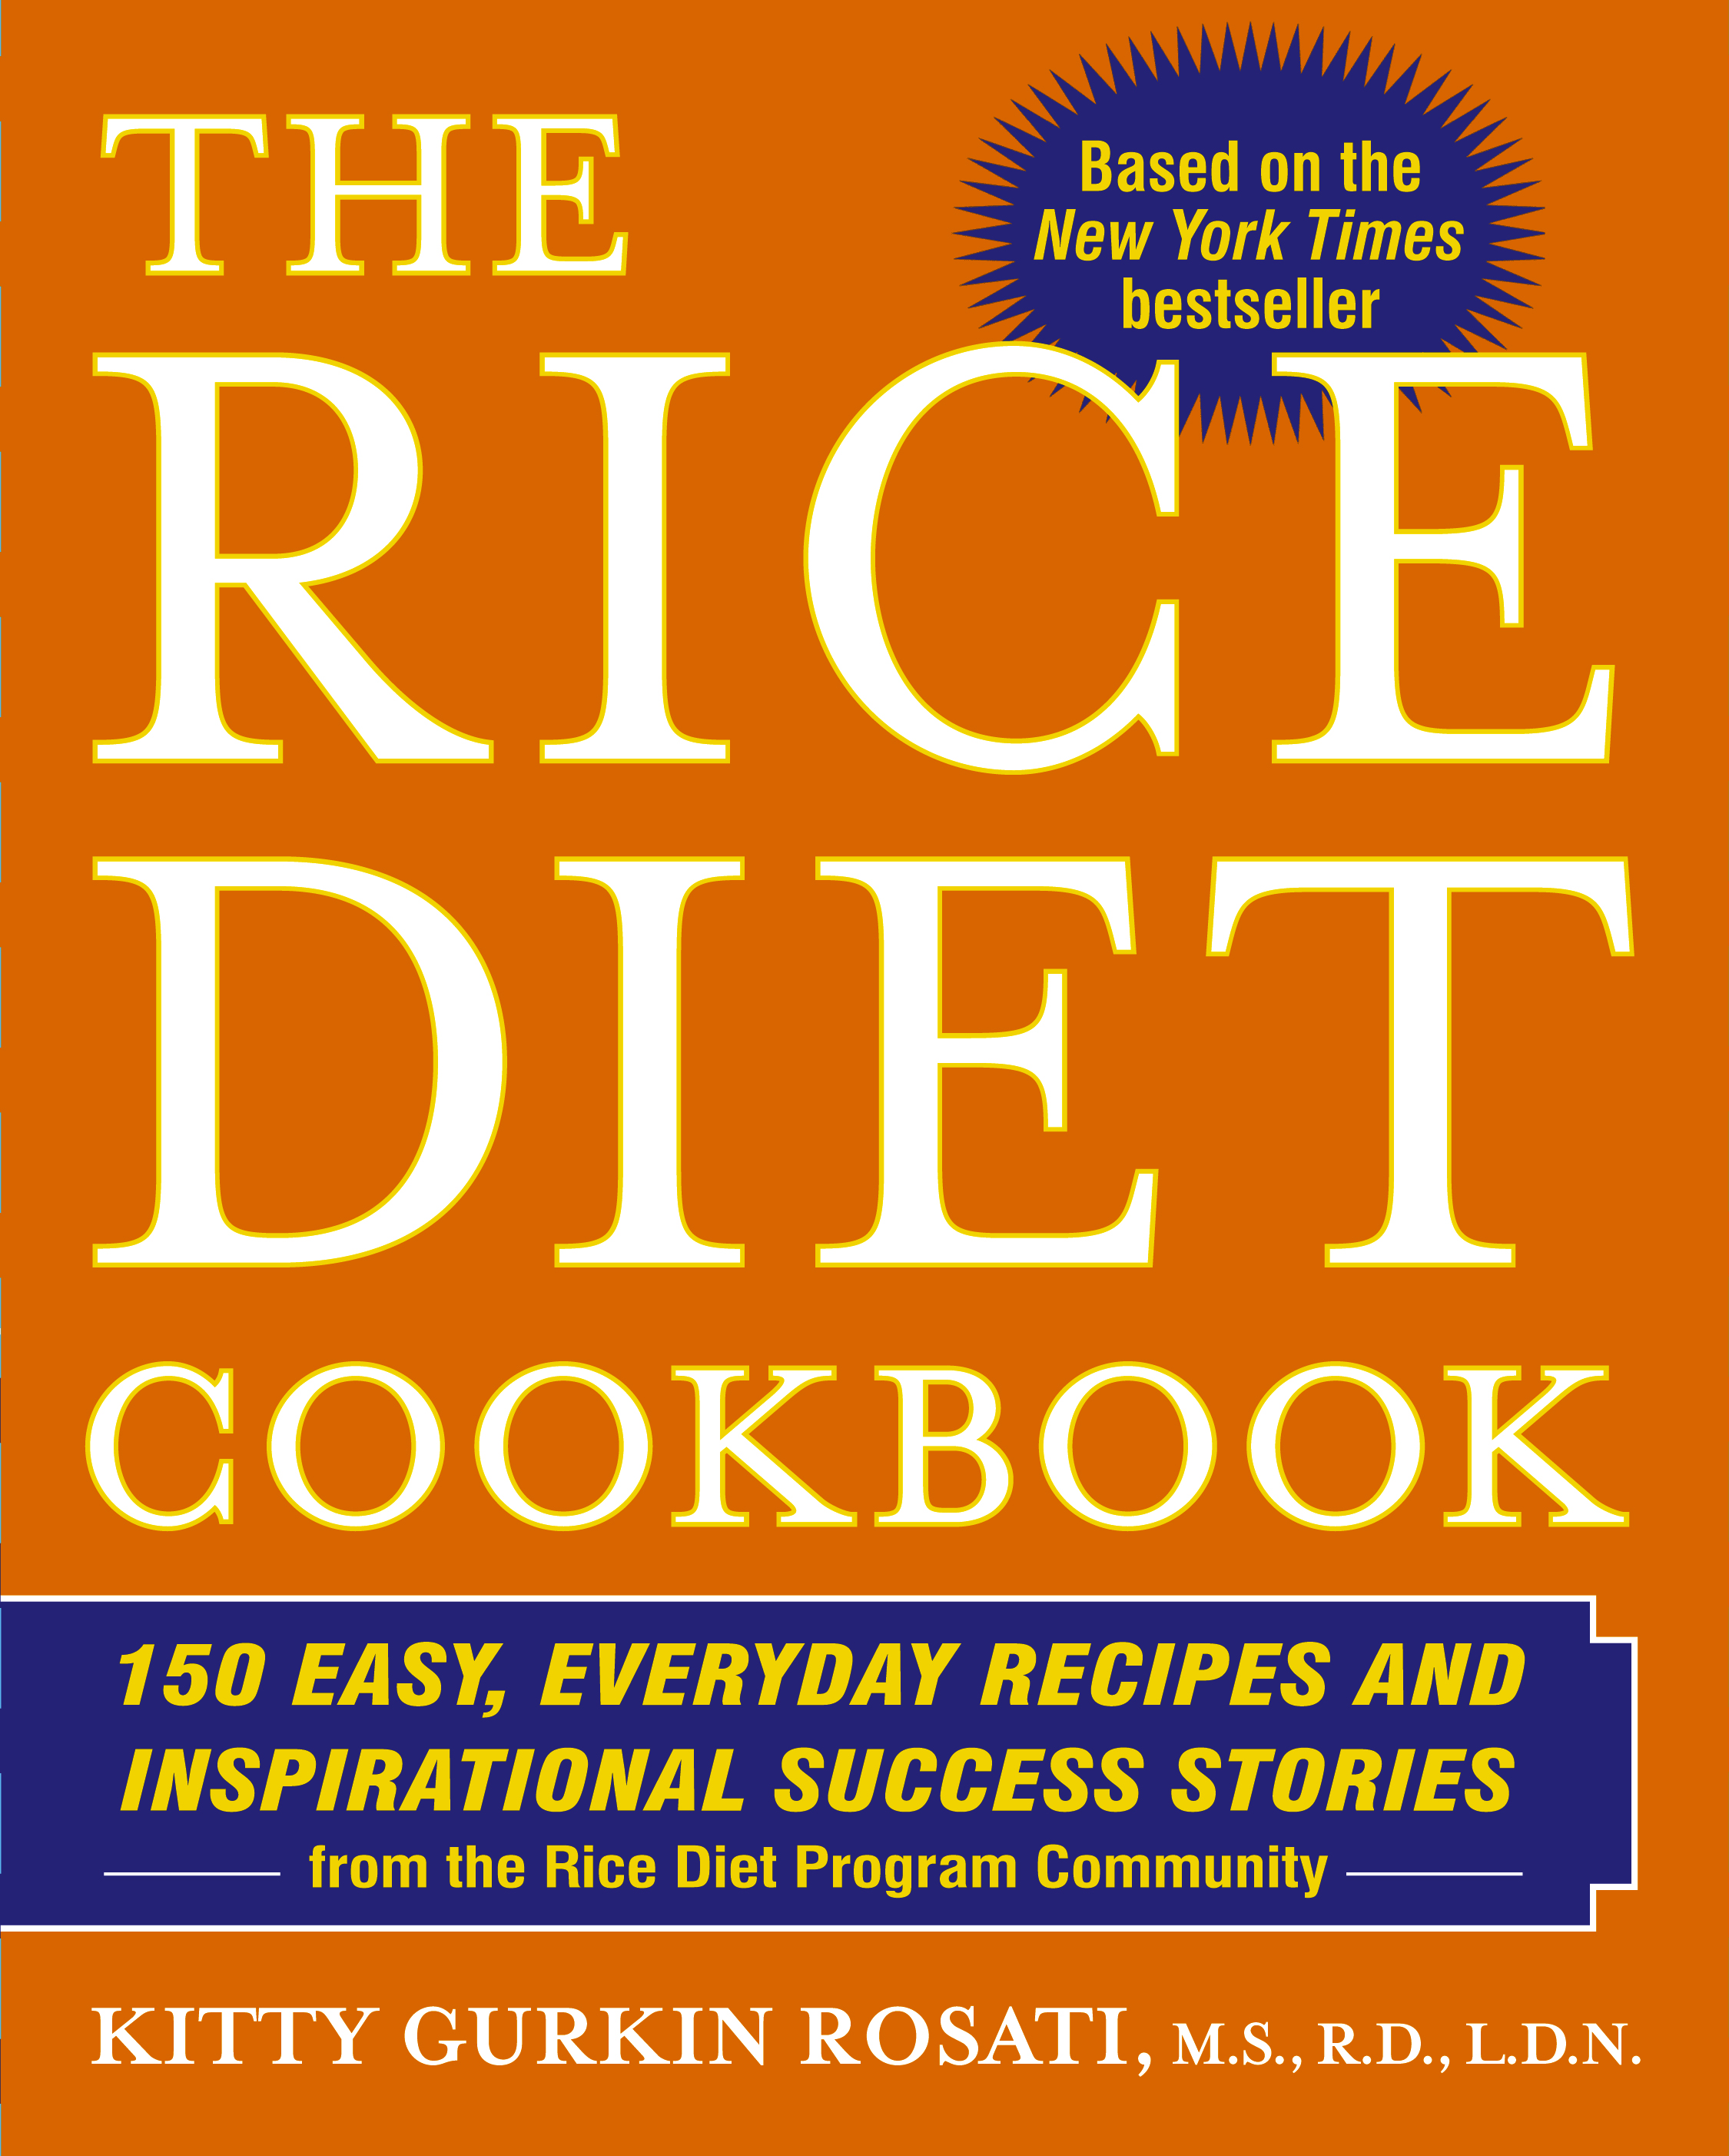 The rice diet cookbook ebook by kitty gurkin rosati official 150 easy everyday recipes and inspirational success stories from the rice diet program community fandeluxe Gallery